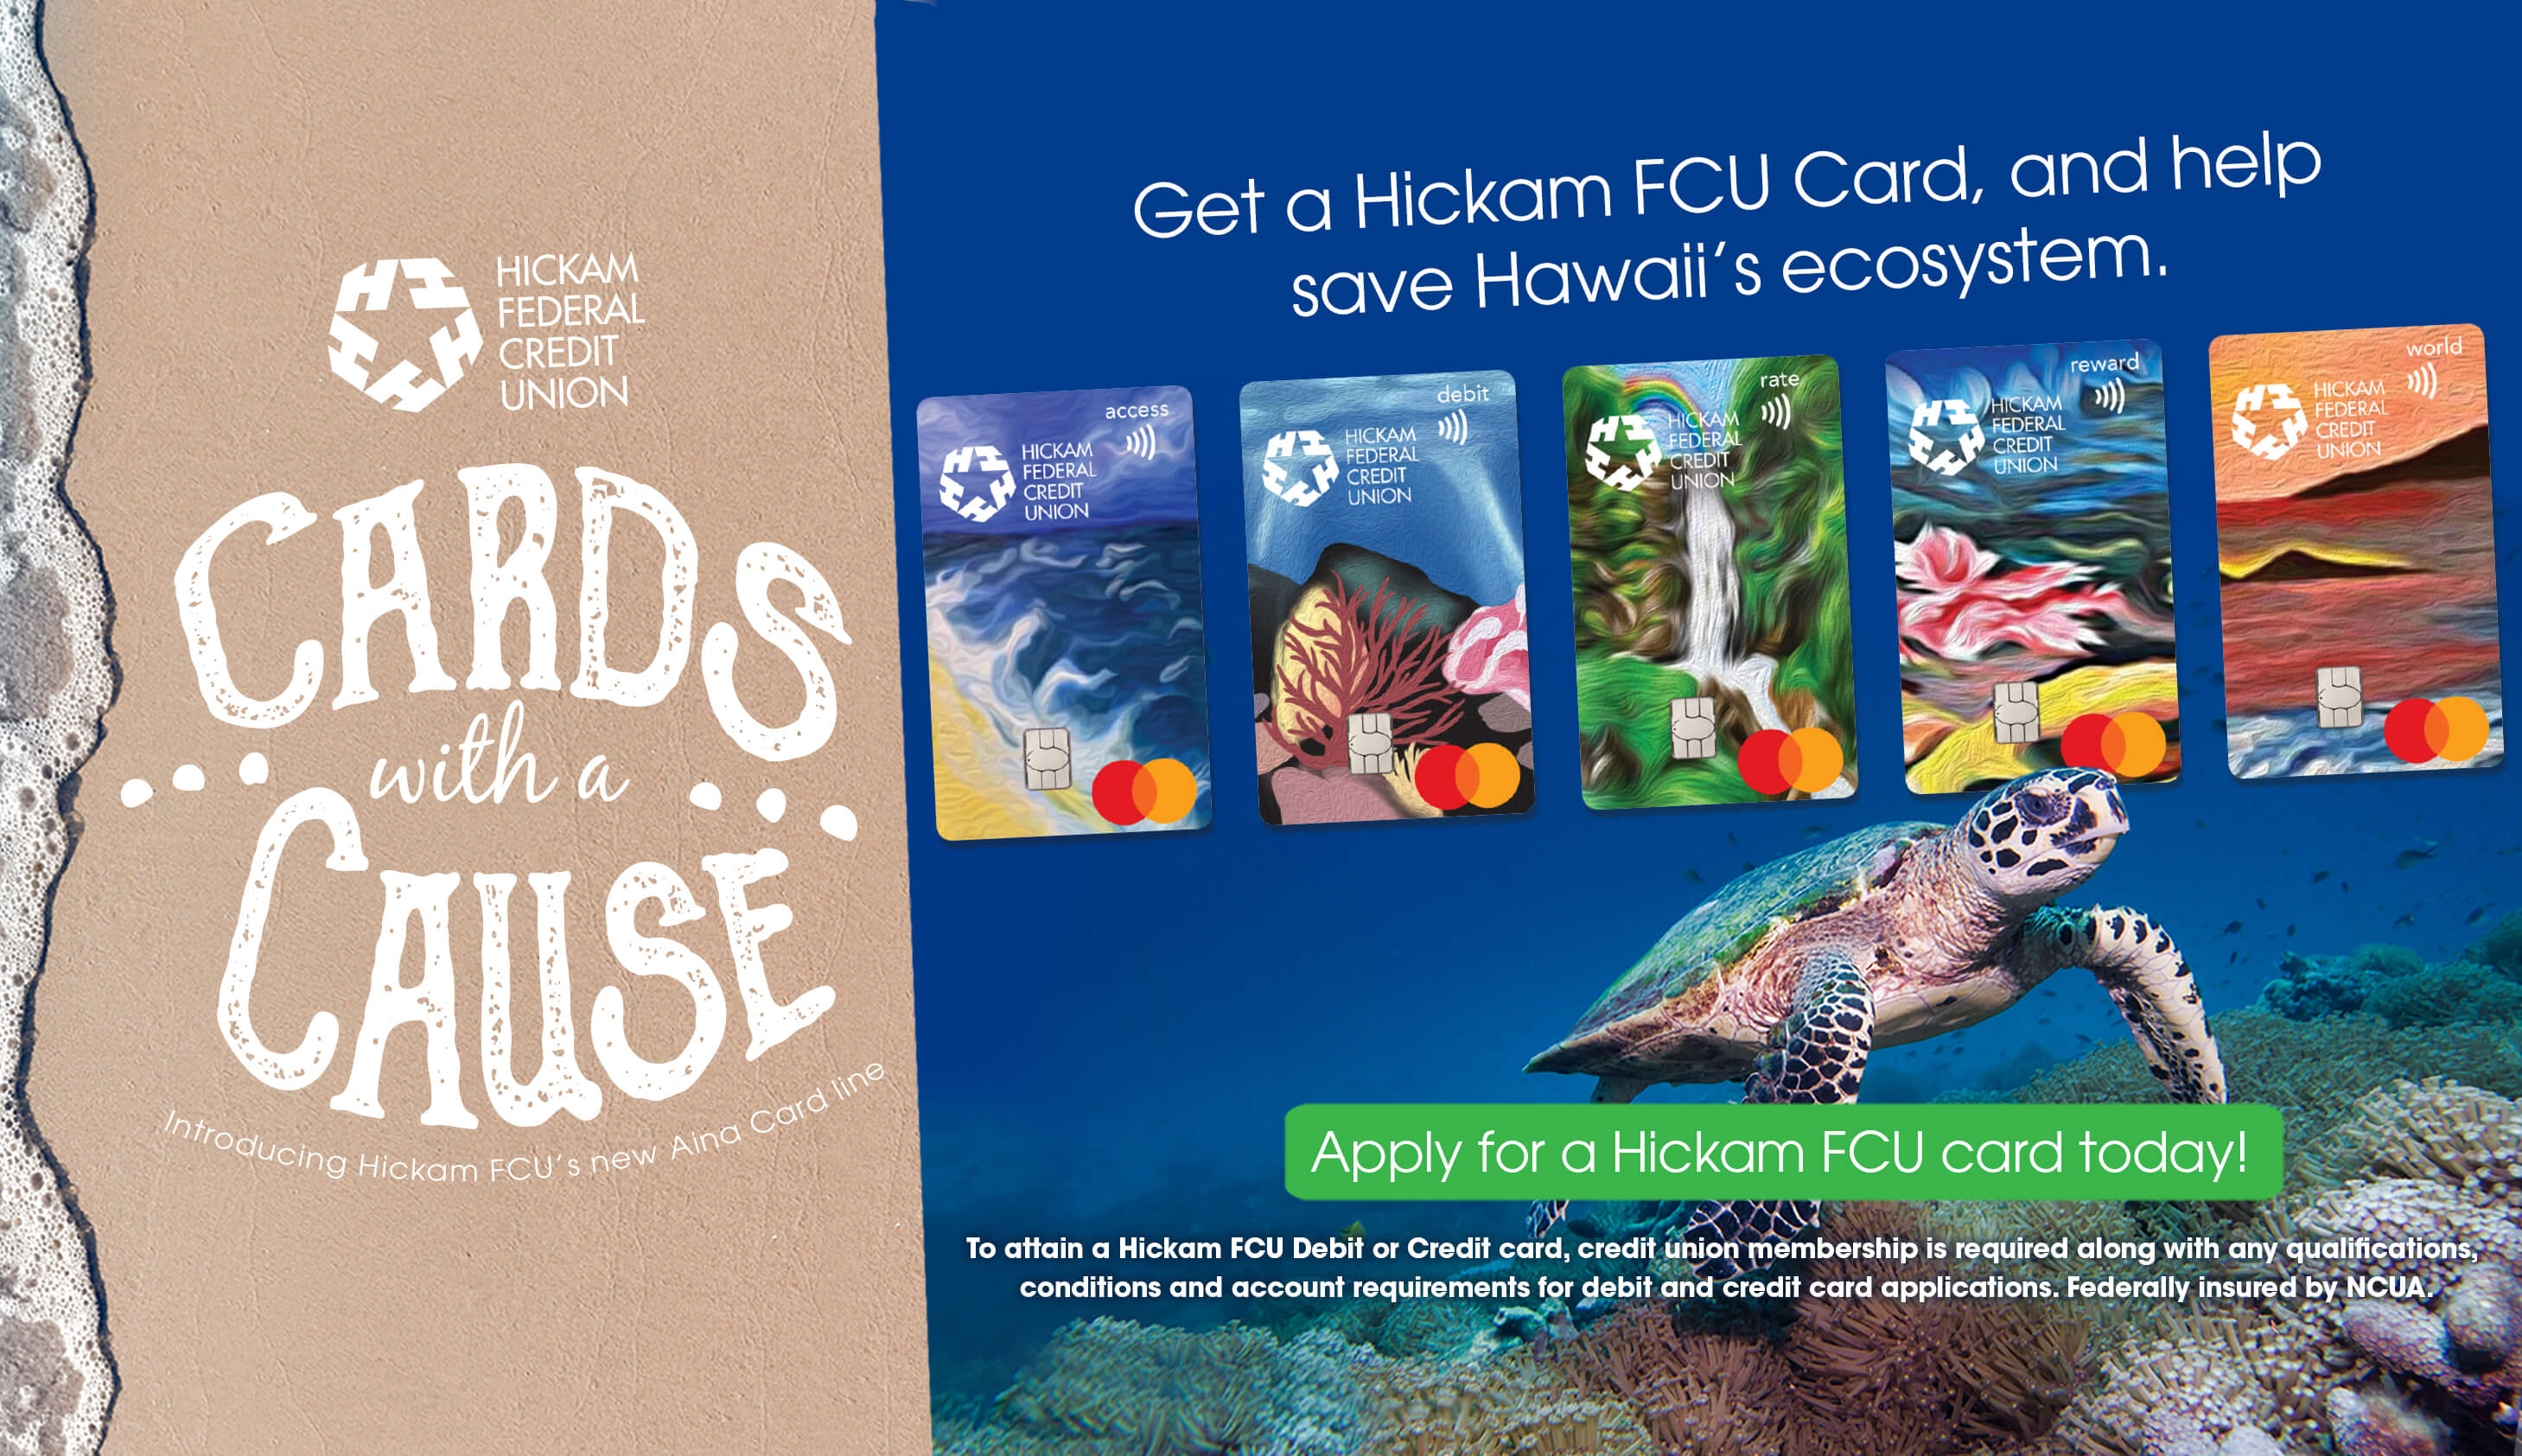 Hickam Federal Credit Union Cards with a Cause. Get a Hickam FCU Card, and help save Hawaii's Ecosystem. Apply for a card today..